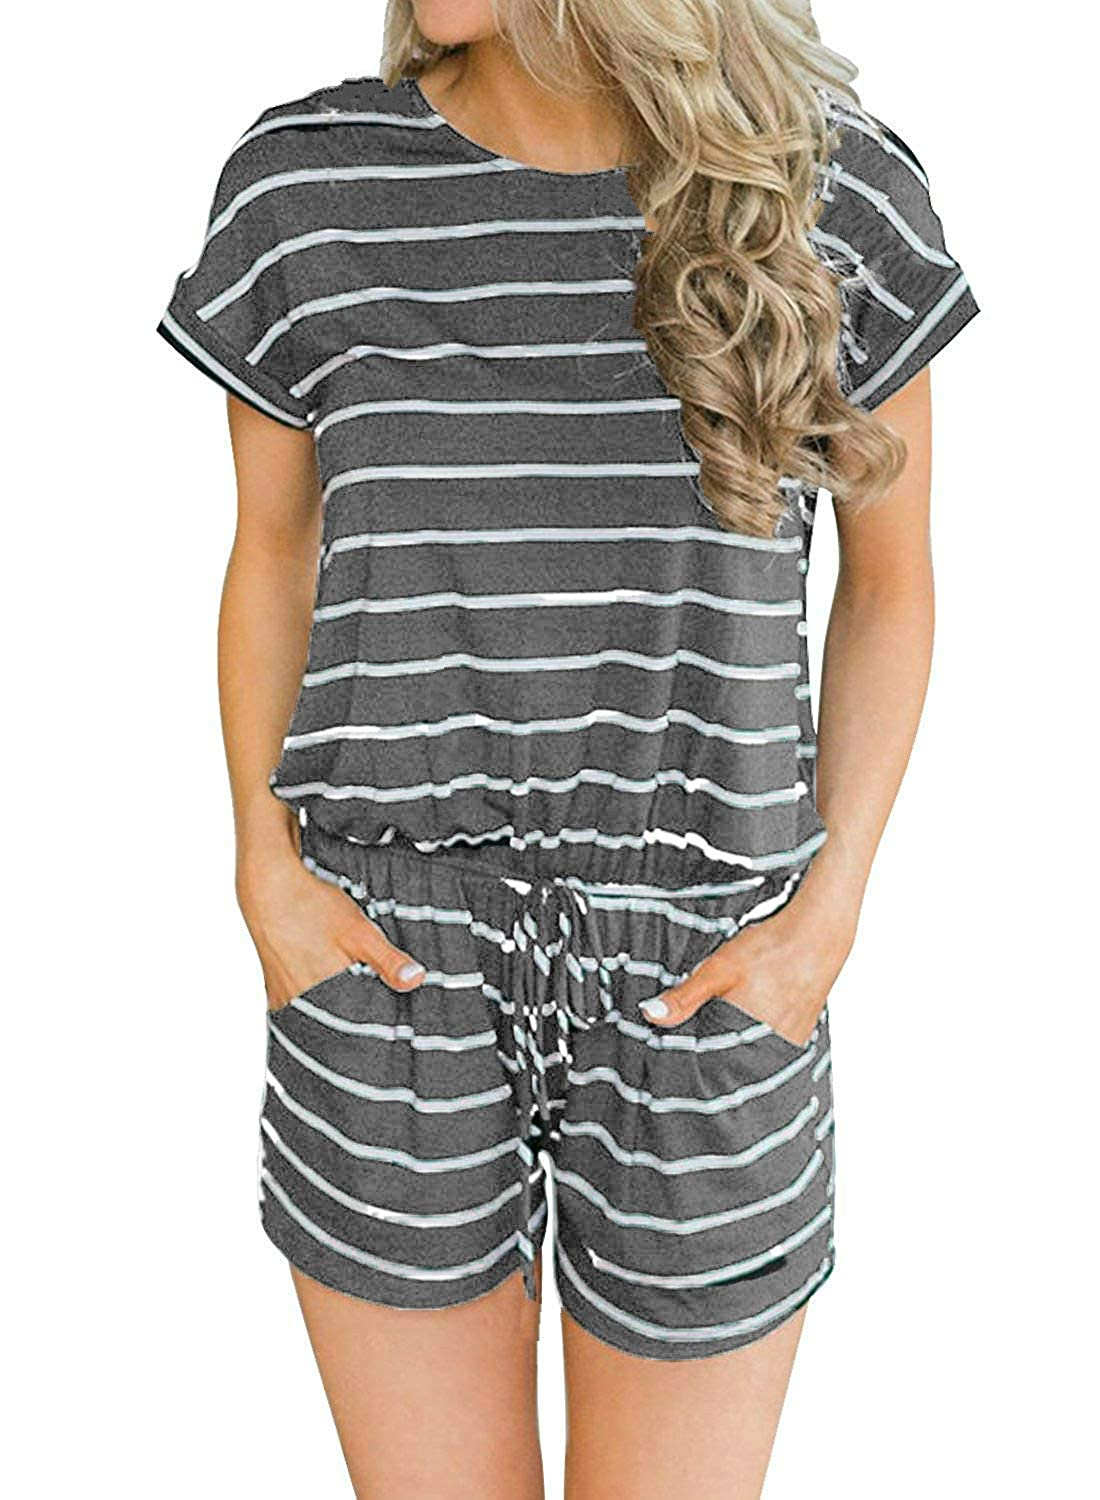 01darkgrey Striped Artfish Women's Summer Striped Jumpsuit Casual Loose Short Sleeve Jumpsuit Rompers